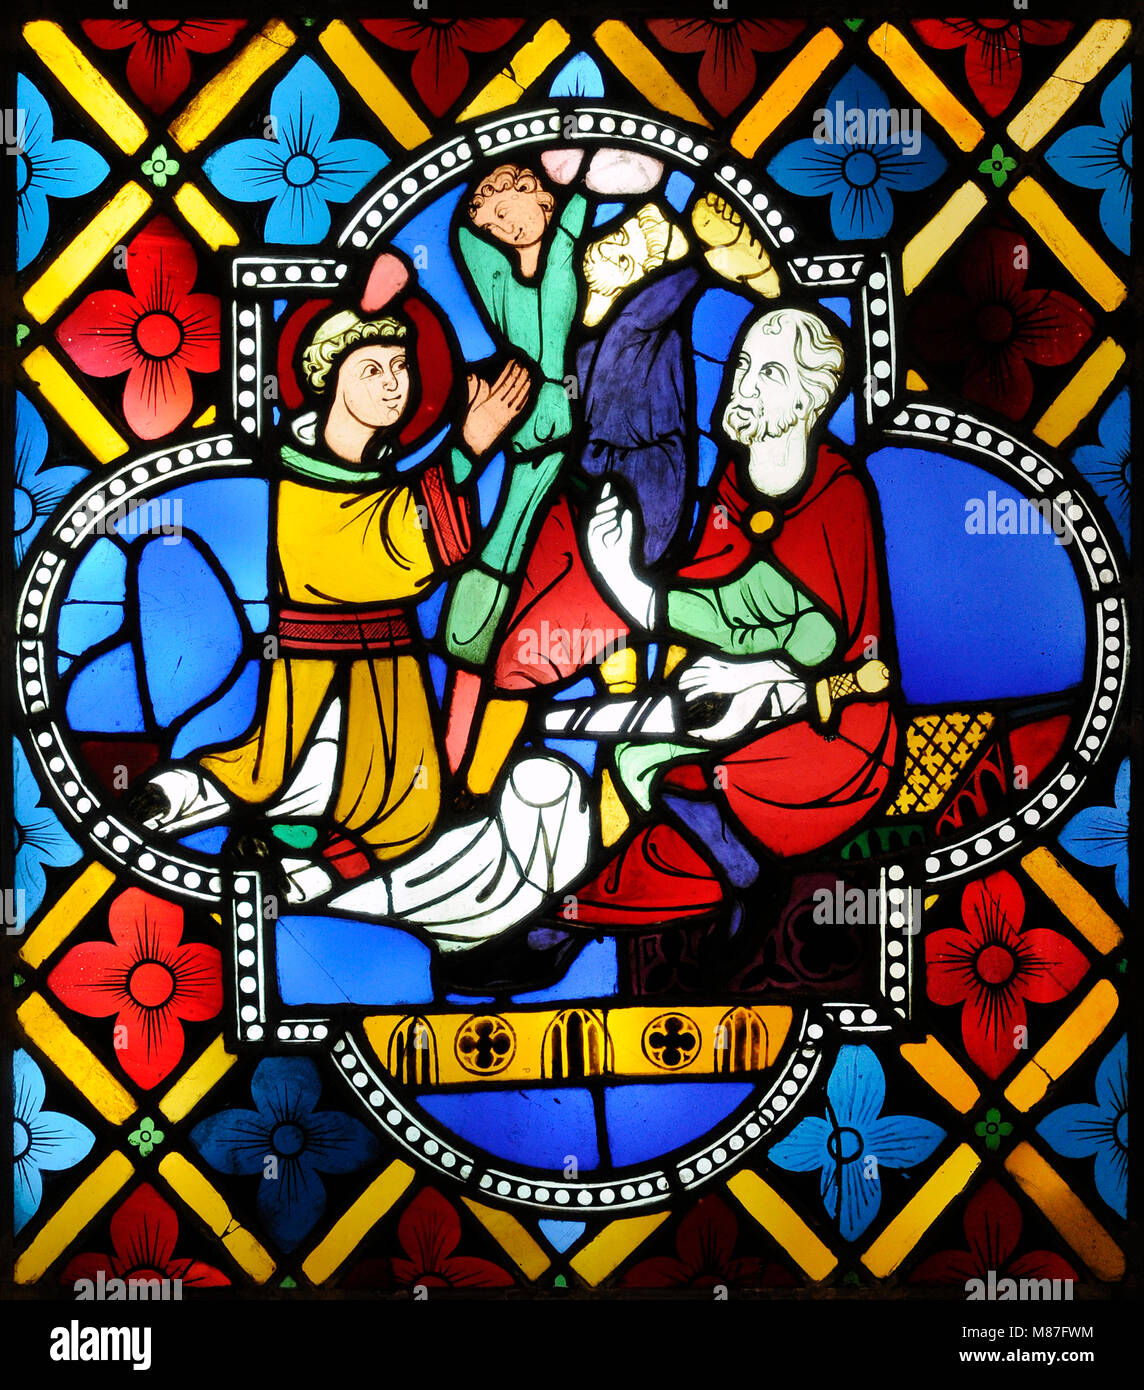 The stoning of Saint Stephen. Cologne, Germany, c. 1280. Stained glass. Schnütgen Museum. Cologne, Germany. - Stock Image